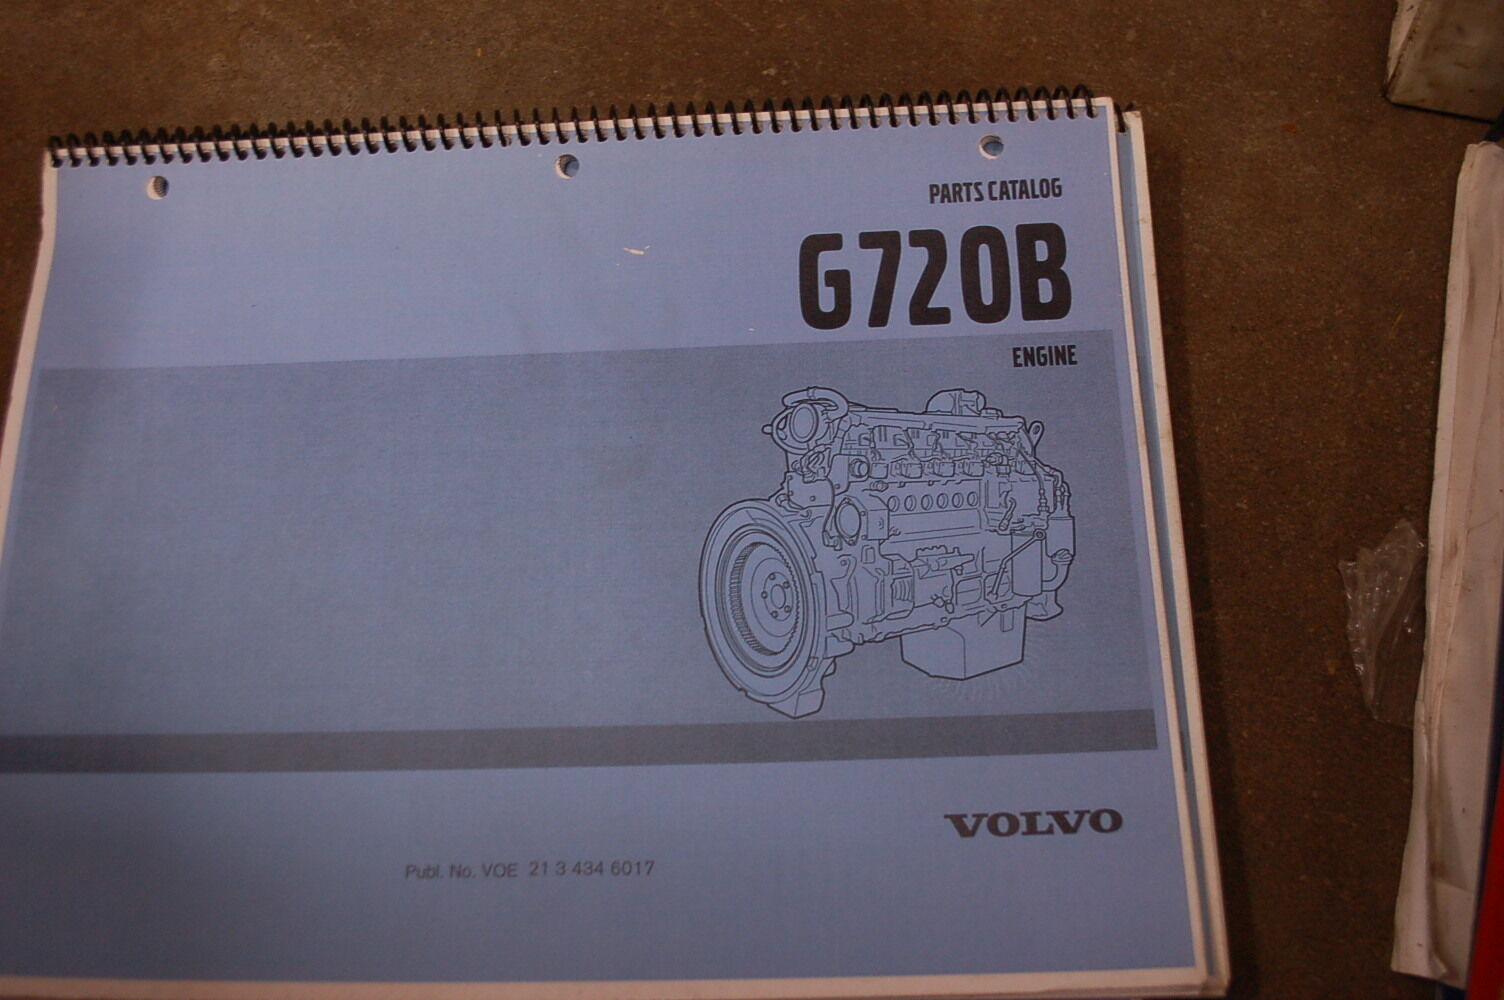 Volvo G720b Diesel Engine Parts Manual Book Catalog List Spare Owner Diagram 1 Of 3only Available Motor Shop